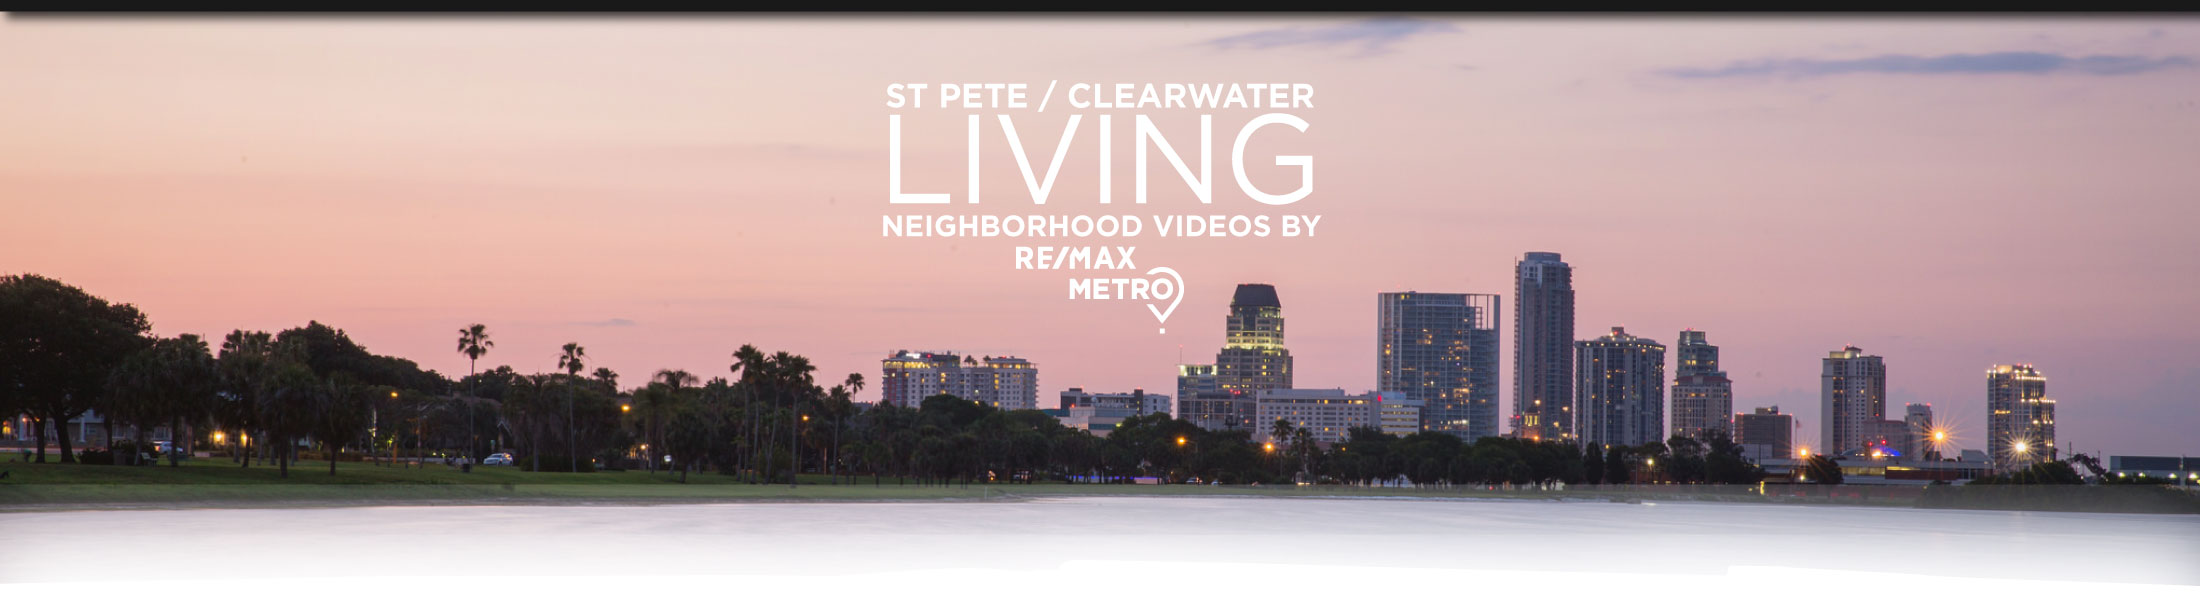 stpete-clearwater-living